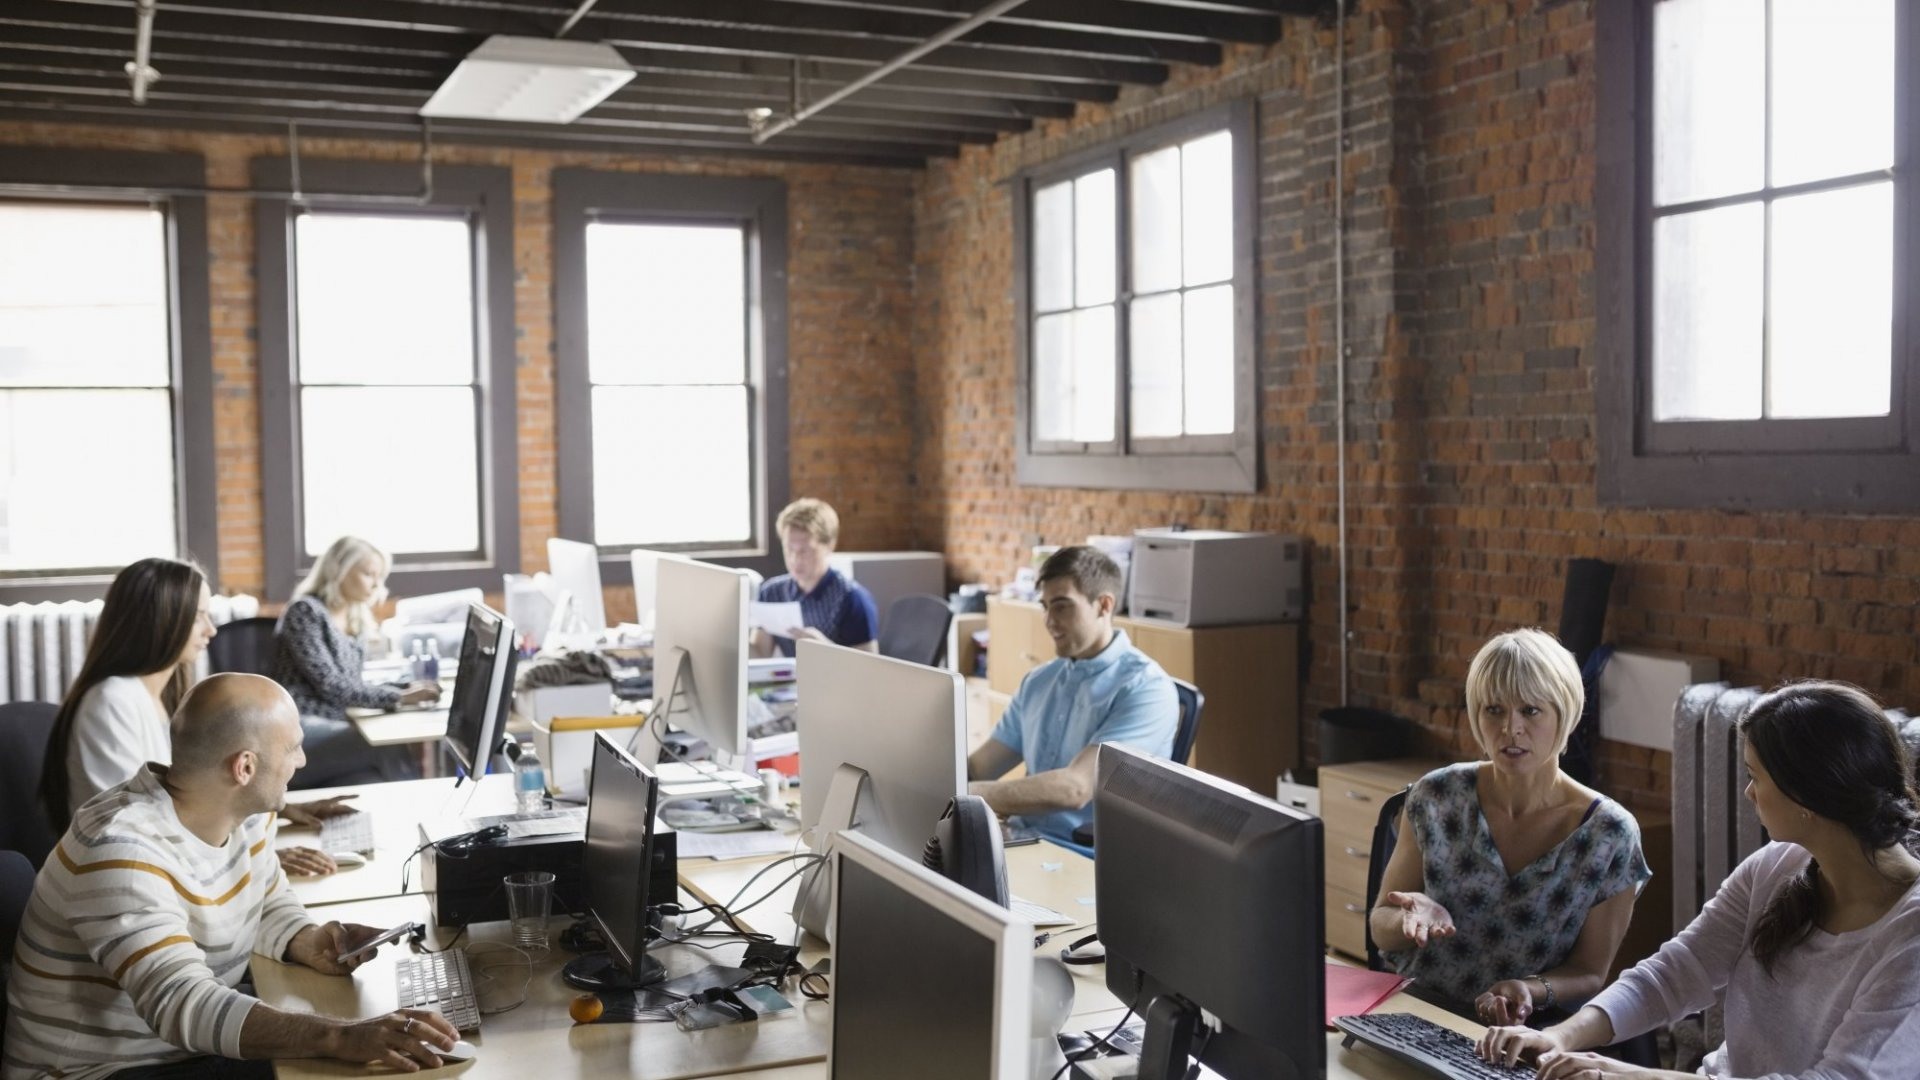 What to Look for When Hiring Your Startup Team